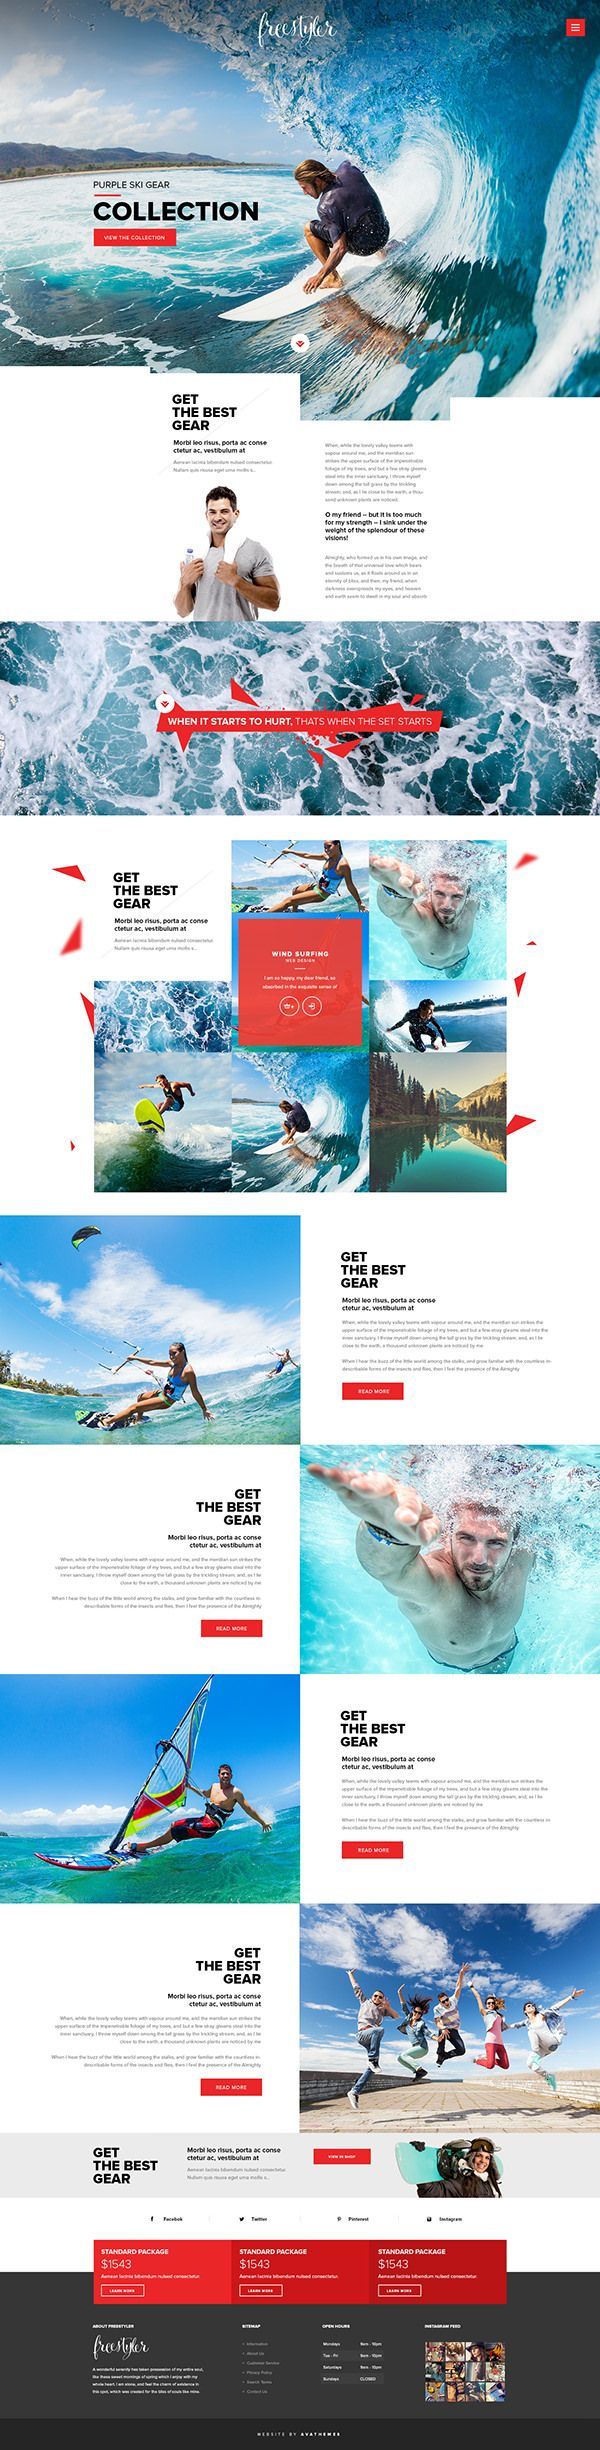 33 best web images on Pinterest | Website designs, Design web and ...